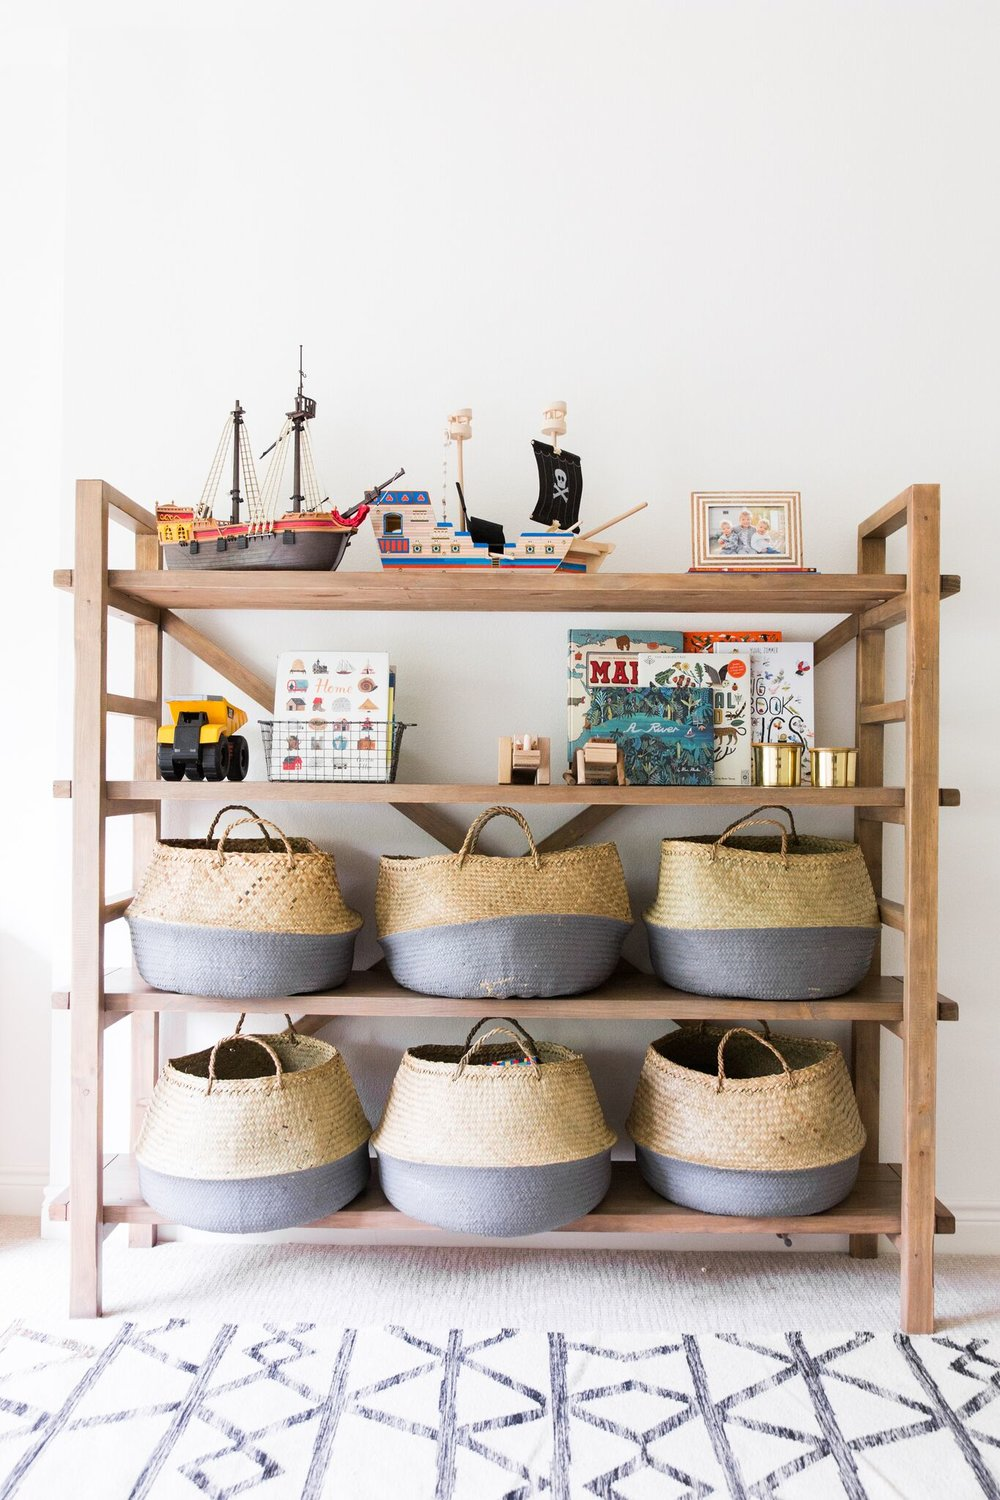 Shelving and Baskets for Toy Storage in Coastal Bohemian Kids' Playroom